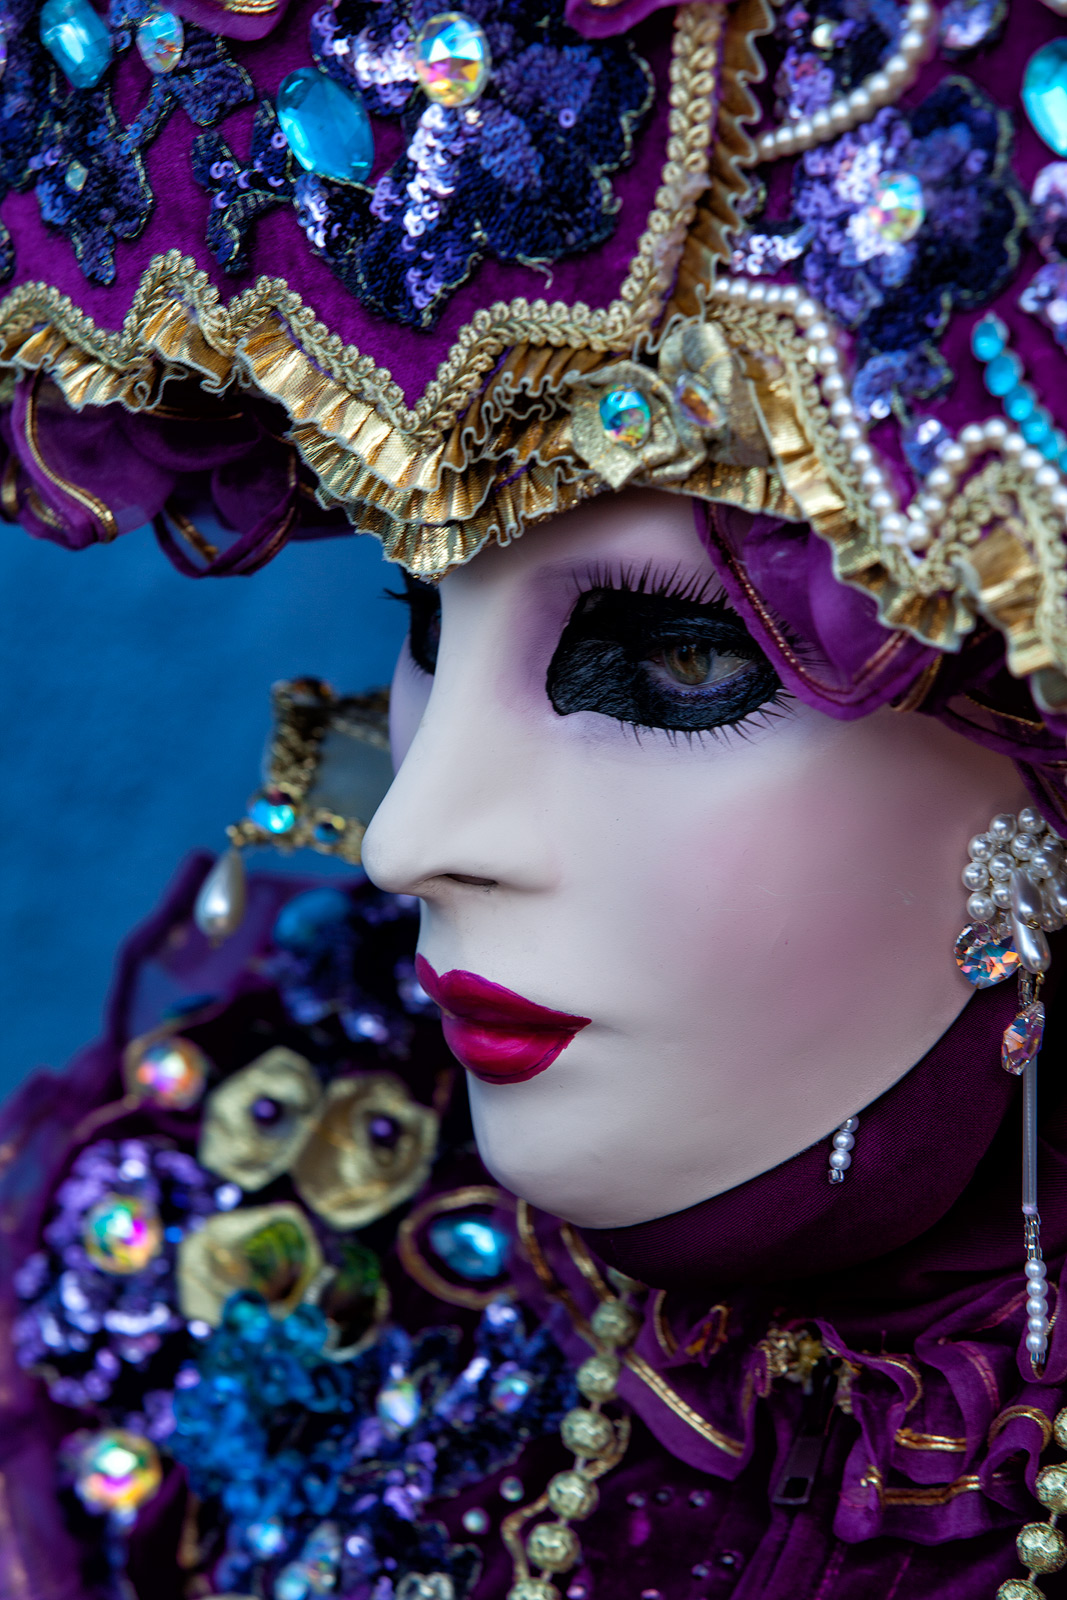 Profile of an beautifully ornate Carnival masked model